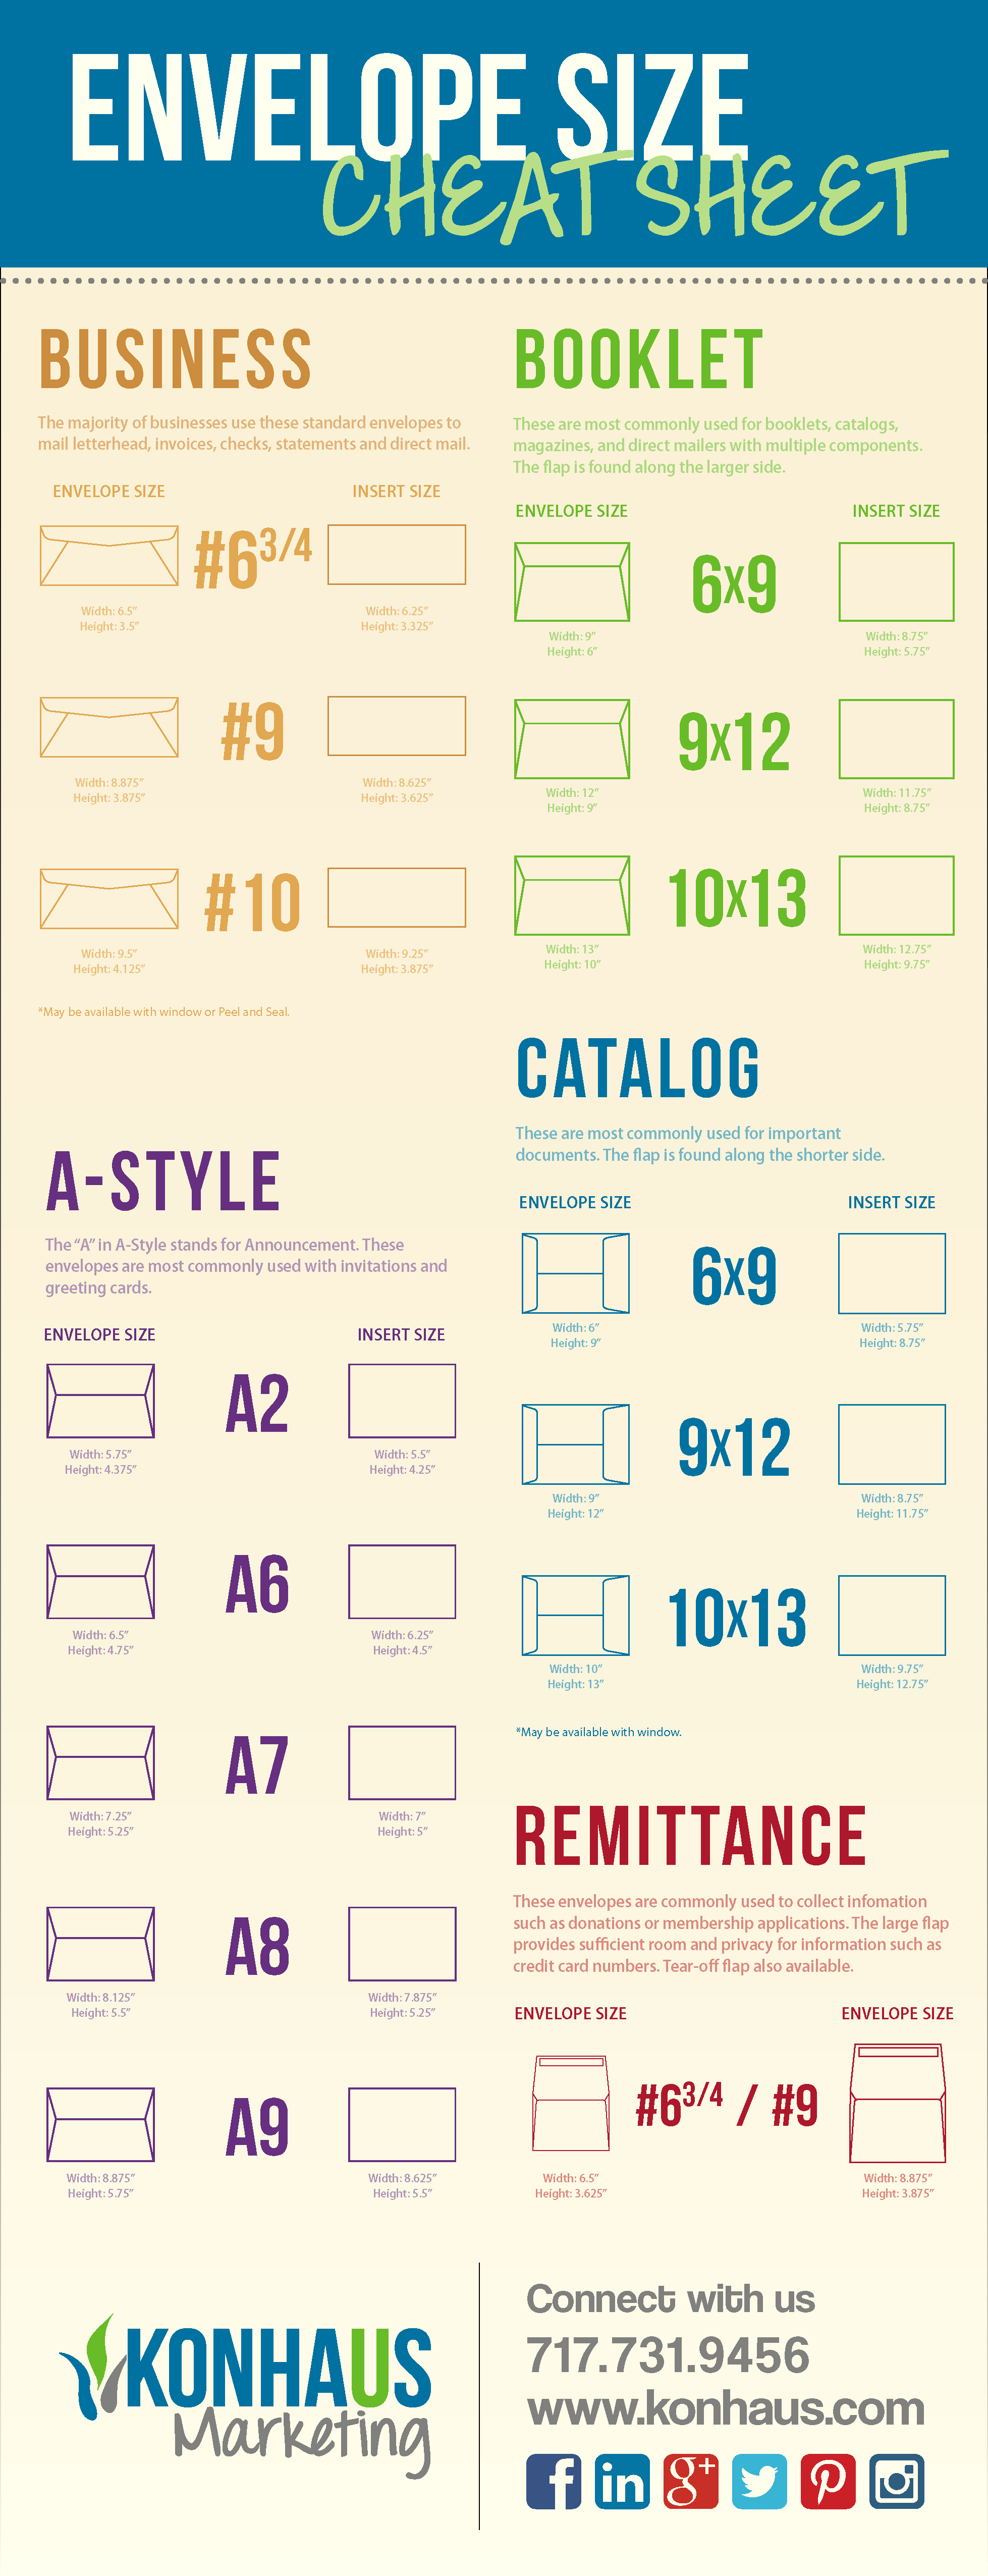 Envelope Size Guide infographic _123115